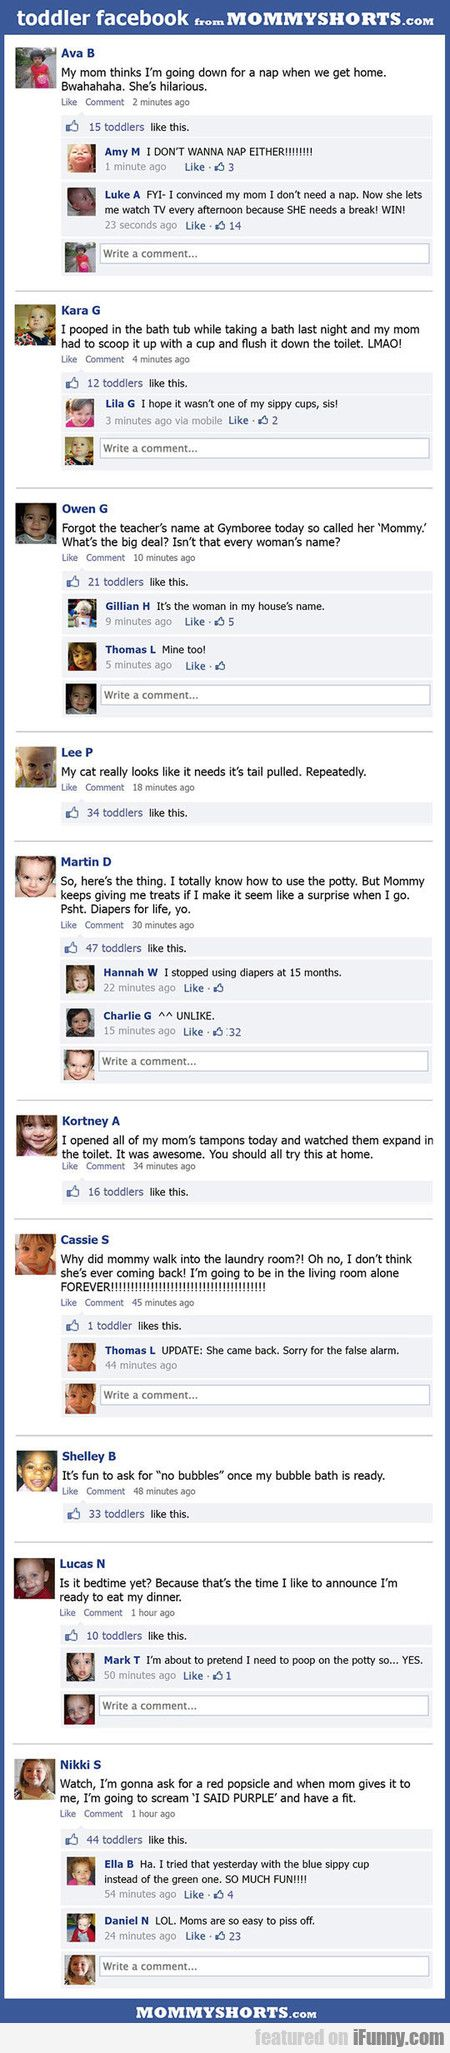 Toddler Facebook - http://www.funnyclone.com/toddler-facebook/